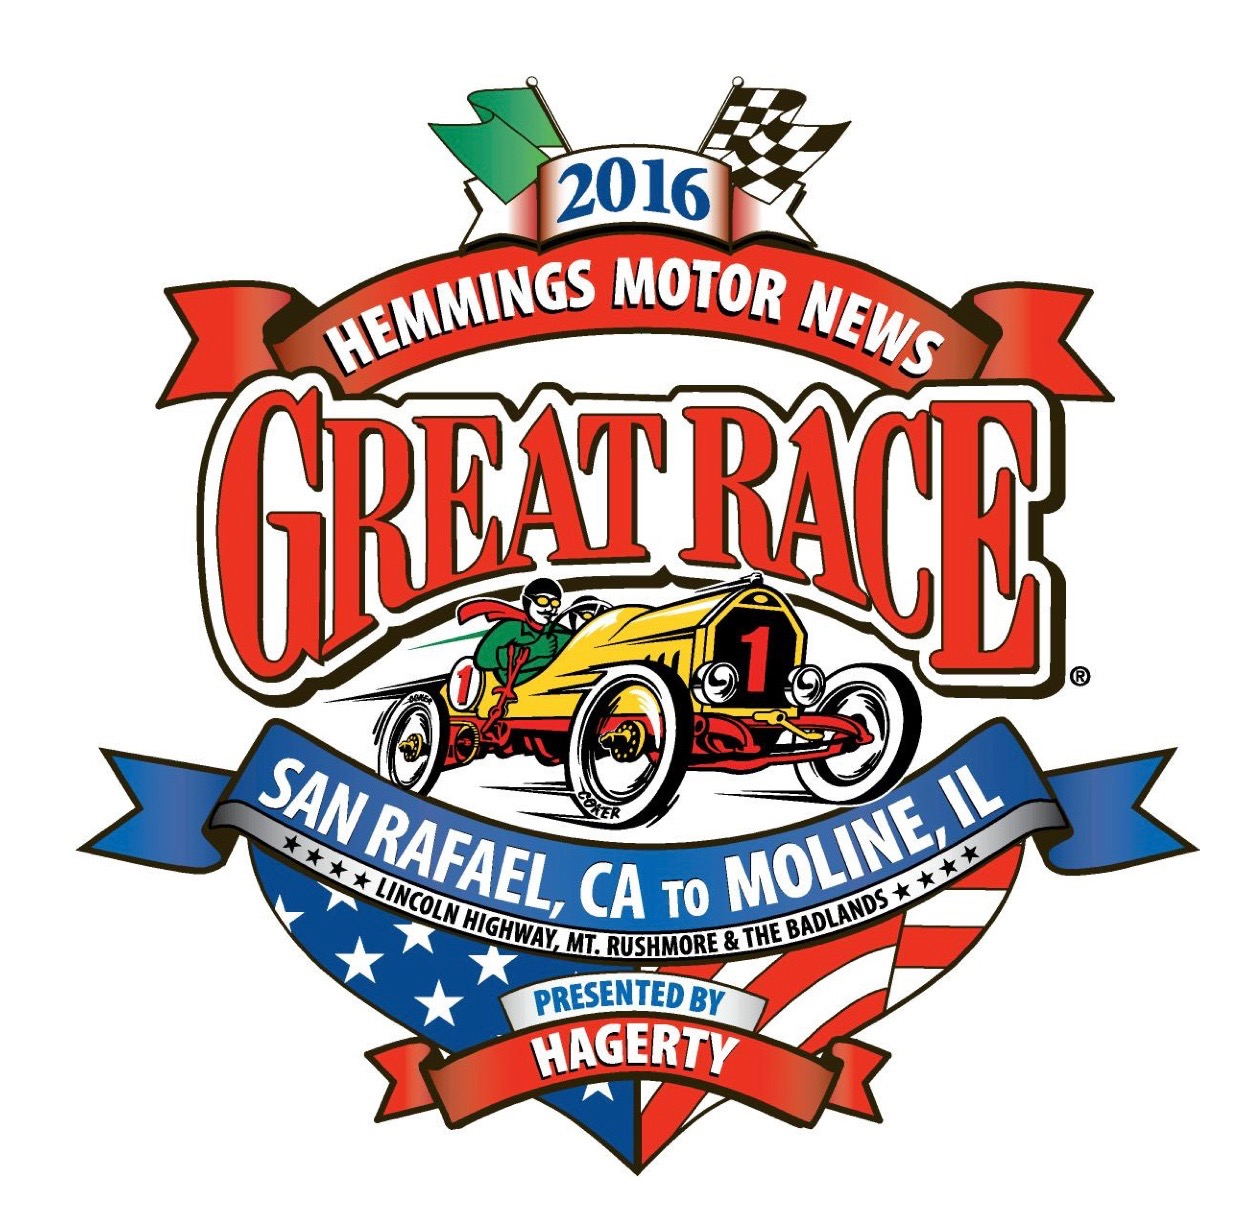 Champion Racing Oil to Sponsor the 2016 Great Race